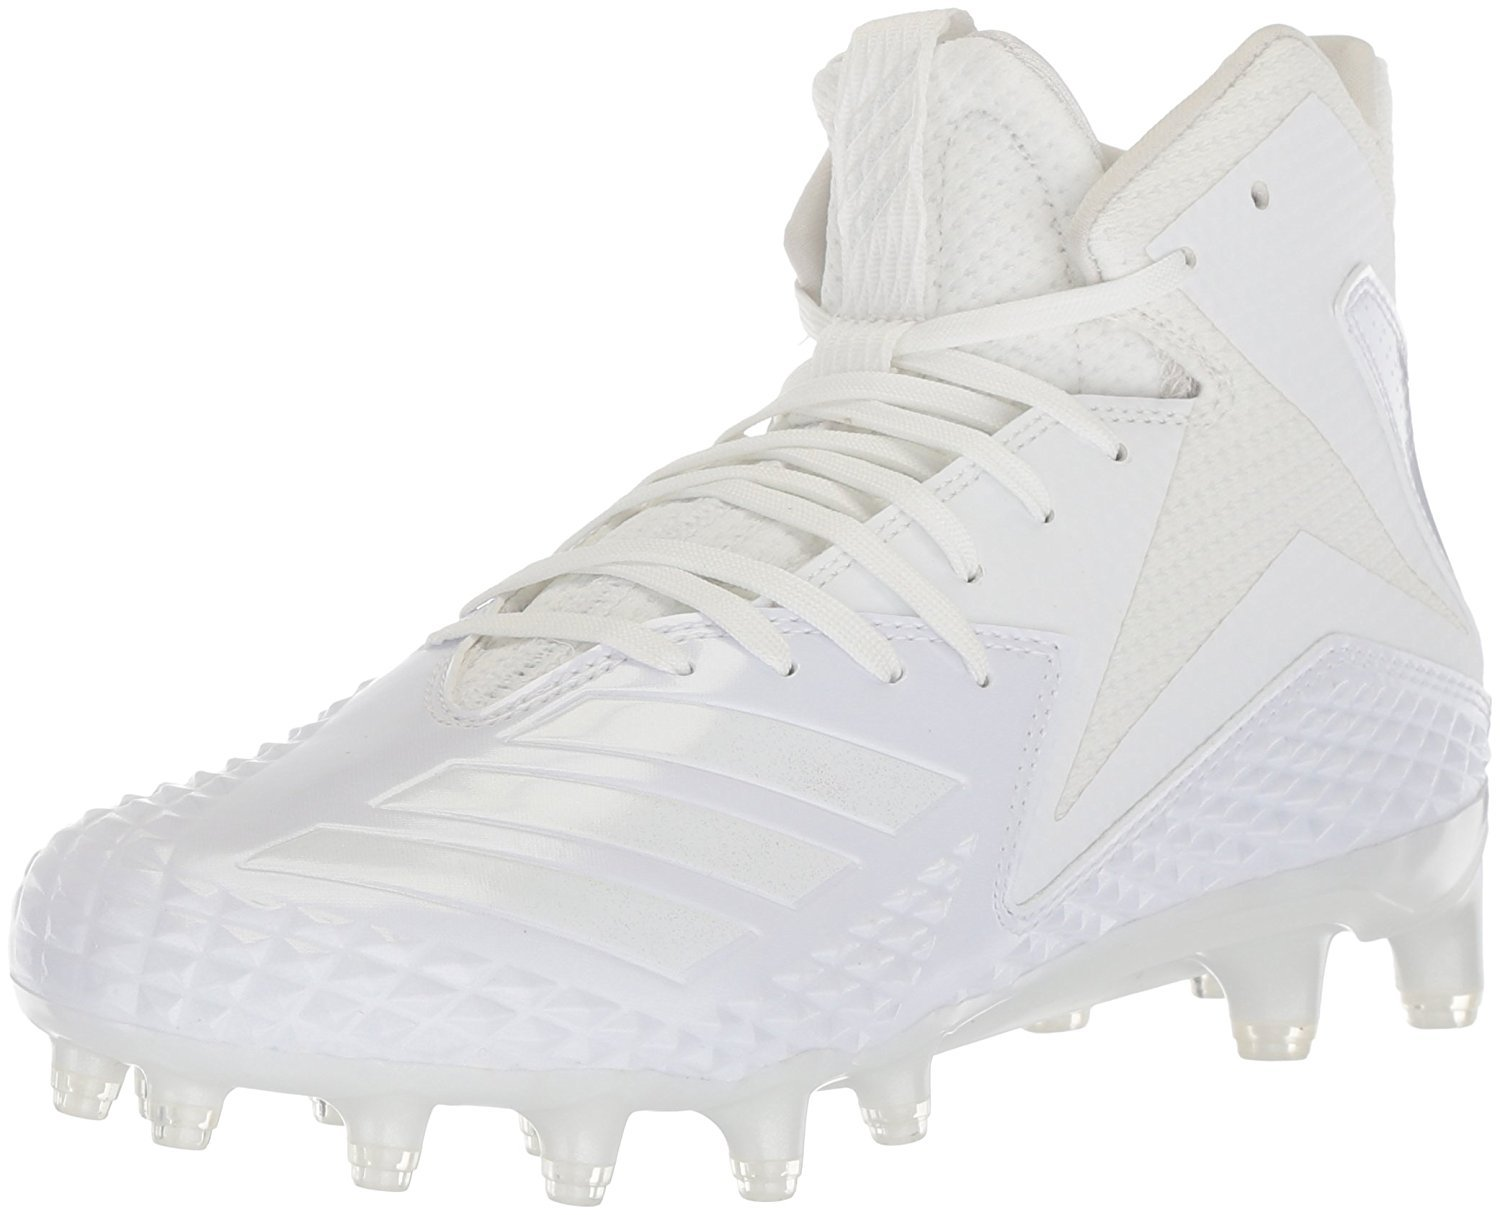 adidas Men's Freak x Carbon Mid Football Shoe, White/White/White, 17 M US by adidas